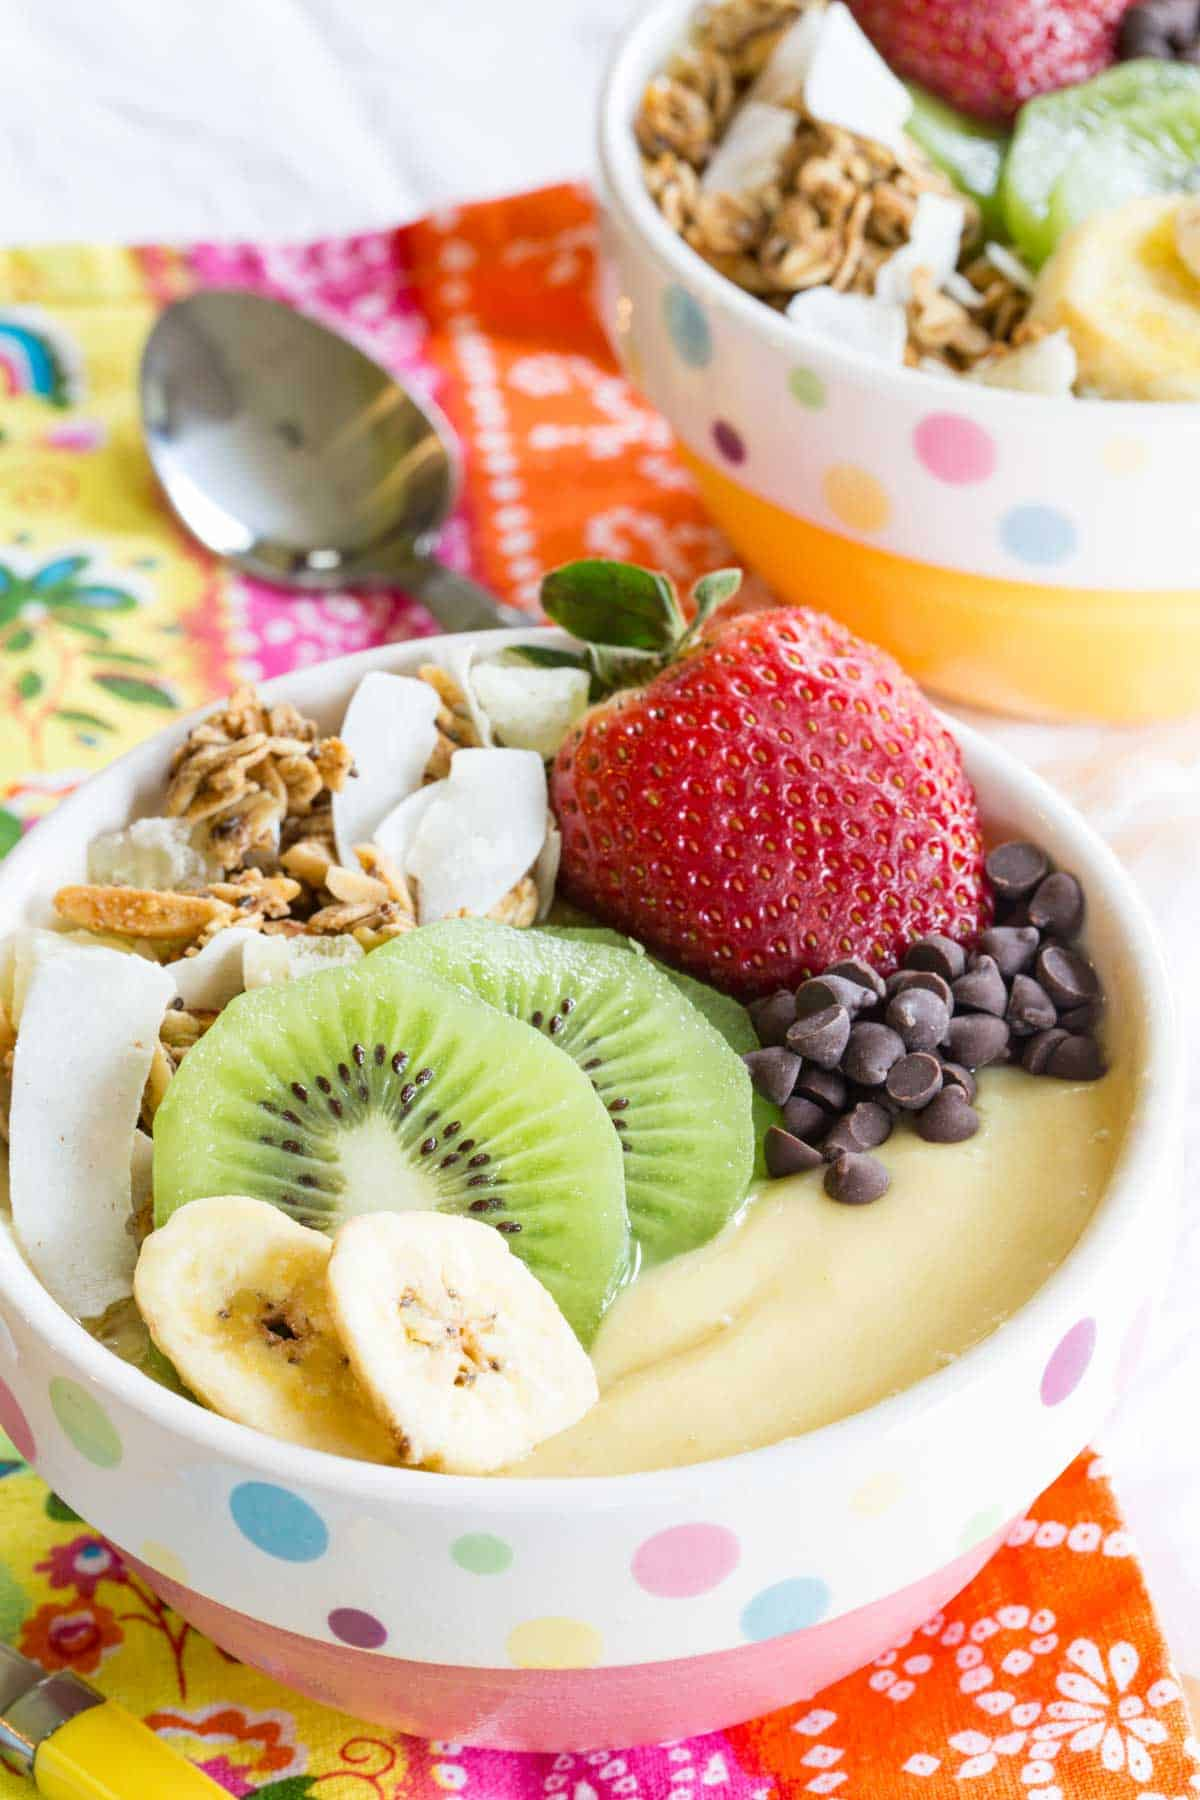 Tropical Smoothie Bowl topped with fresh fruit, chocolate chips, and granola